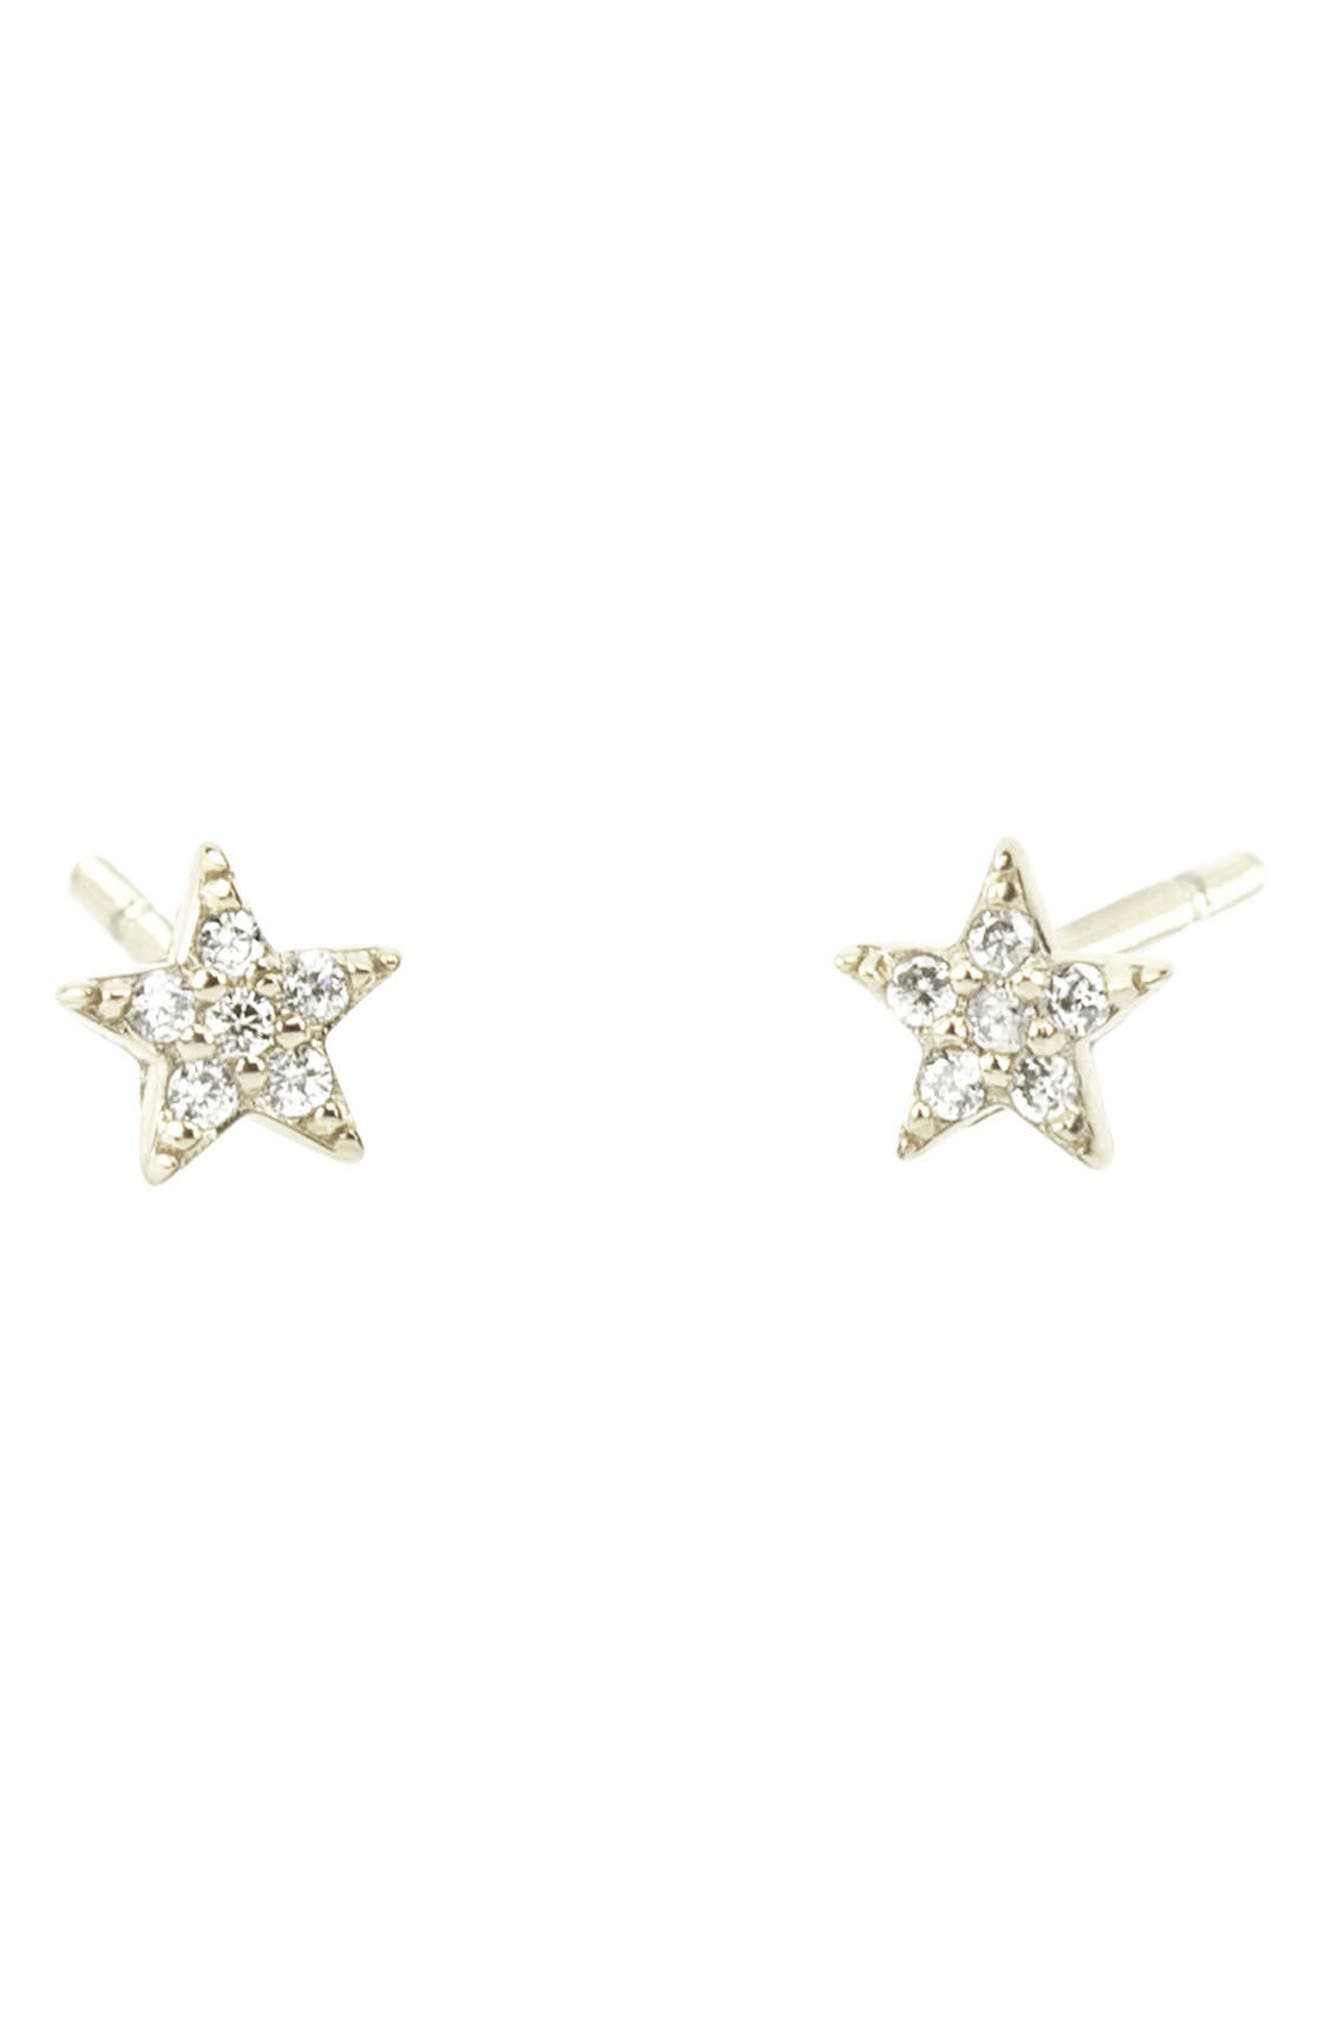 Pavé Star Stud Earrings,                         Main,                         color, 040